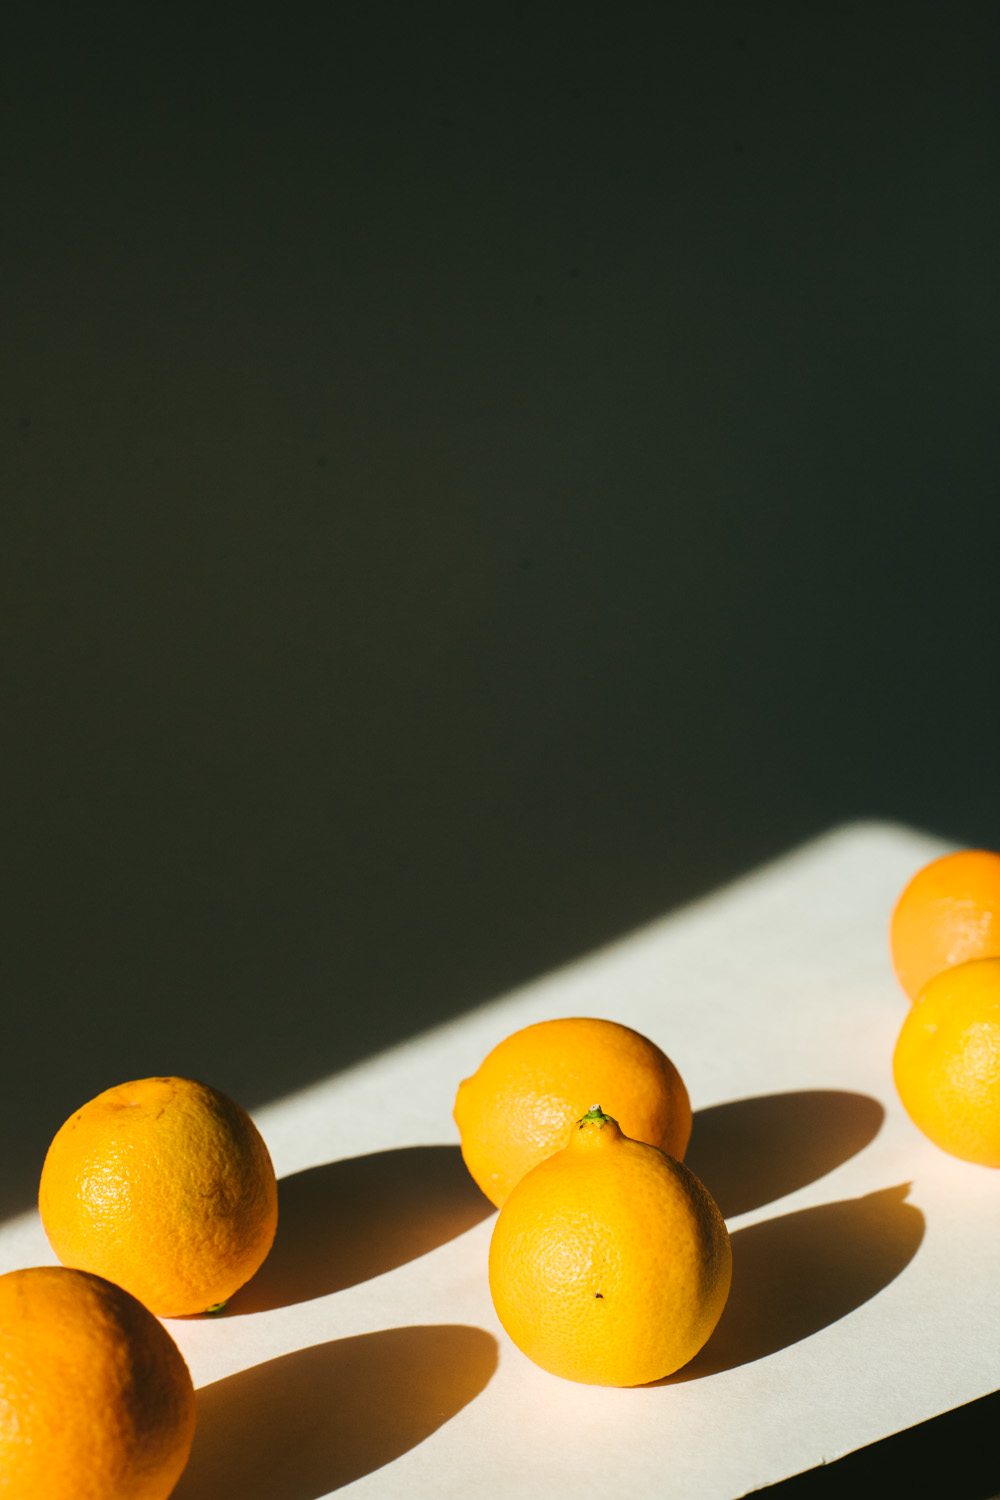 photo of oranges in hard light